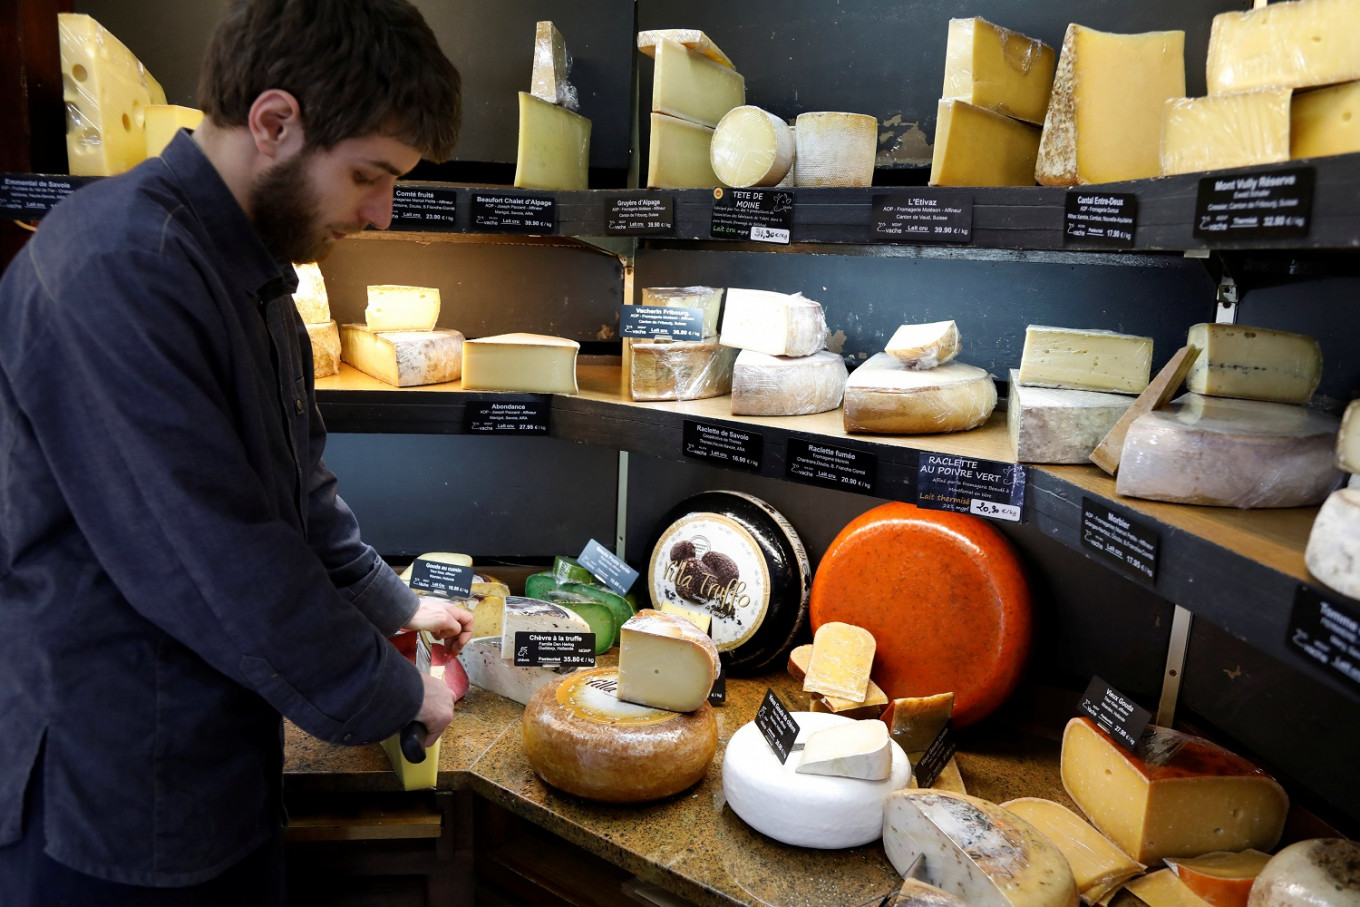 Raw milk is good for you, French cheese makers say